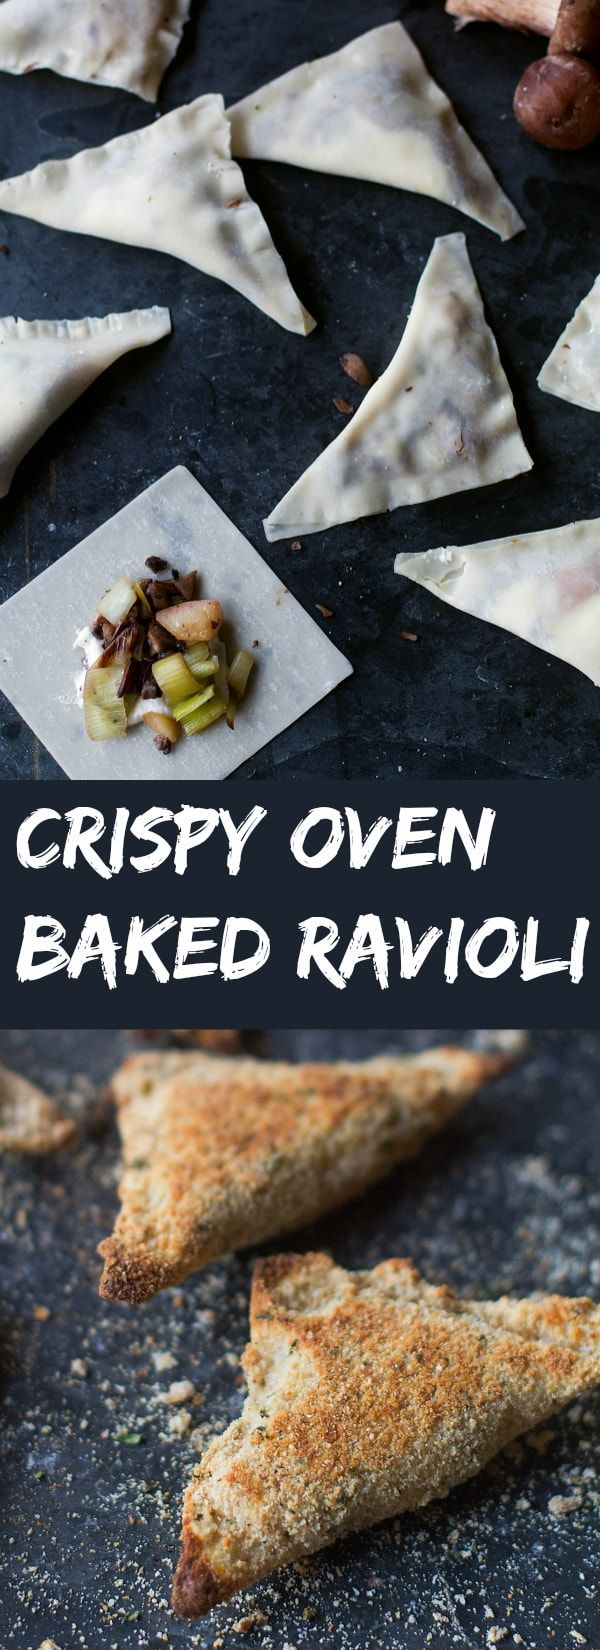 Oven Toasted Ravioli with Caramelized Mushrooms, Apples and Leeks - Young, Broke and Hungry